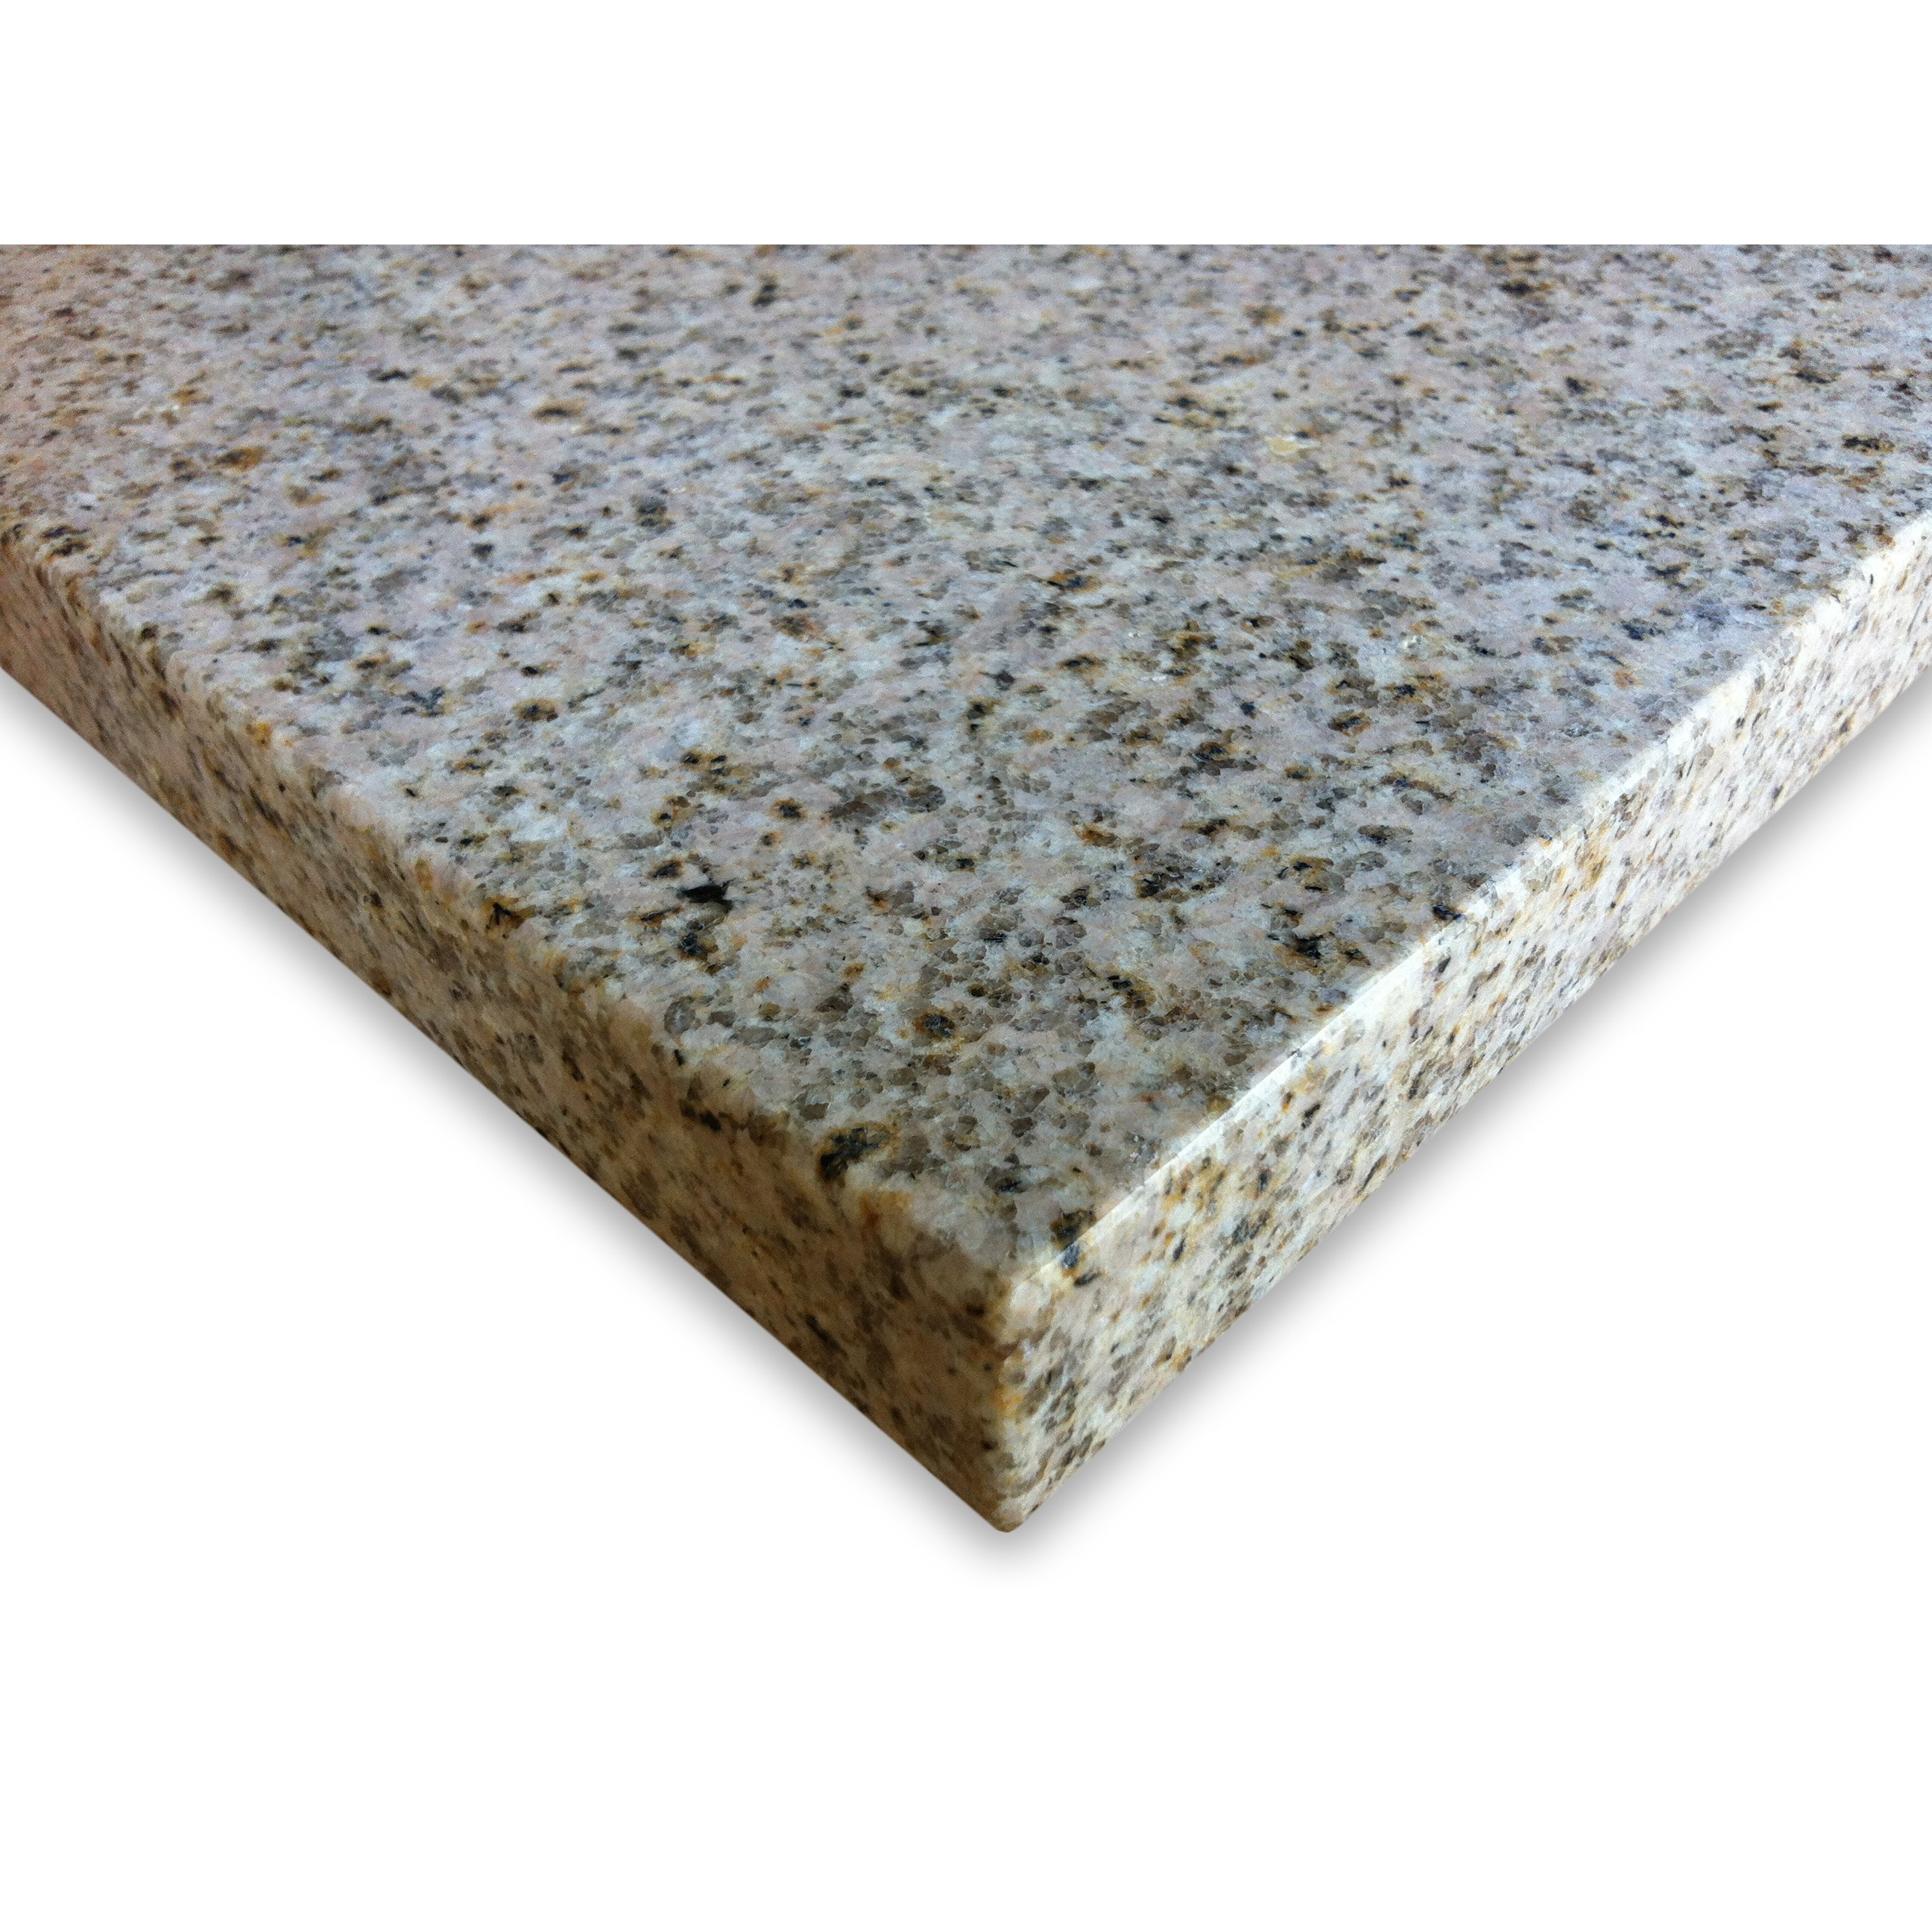 Granite Countertops | BuildDirect®